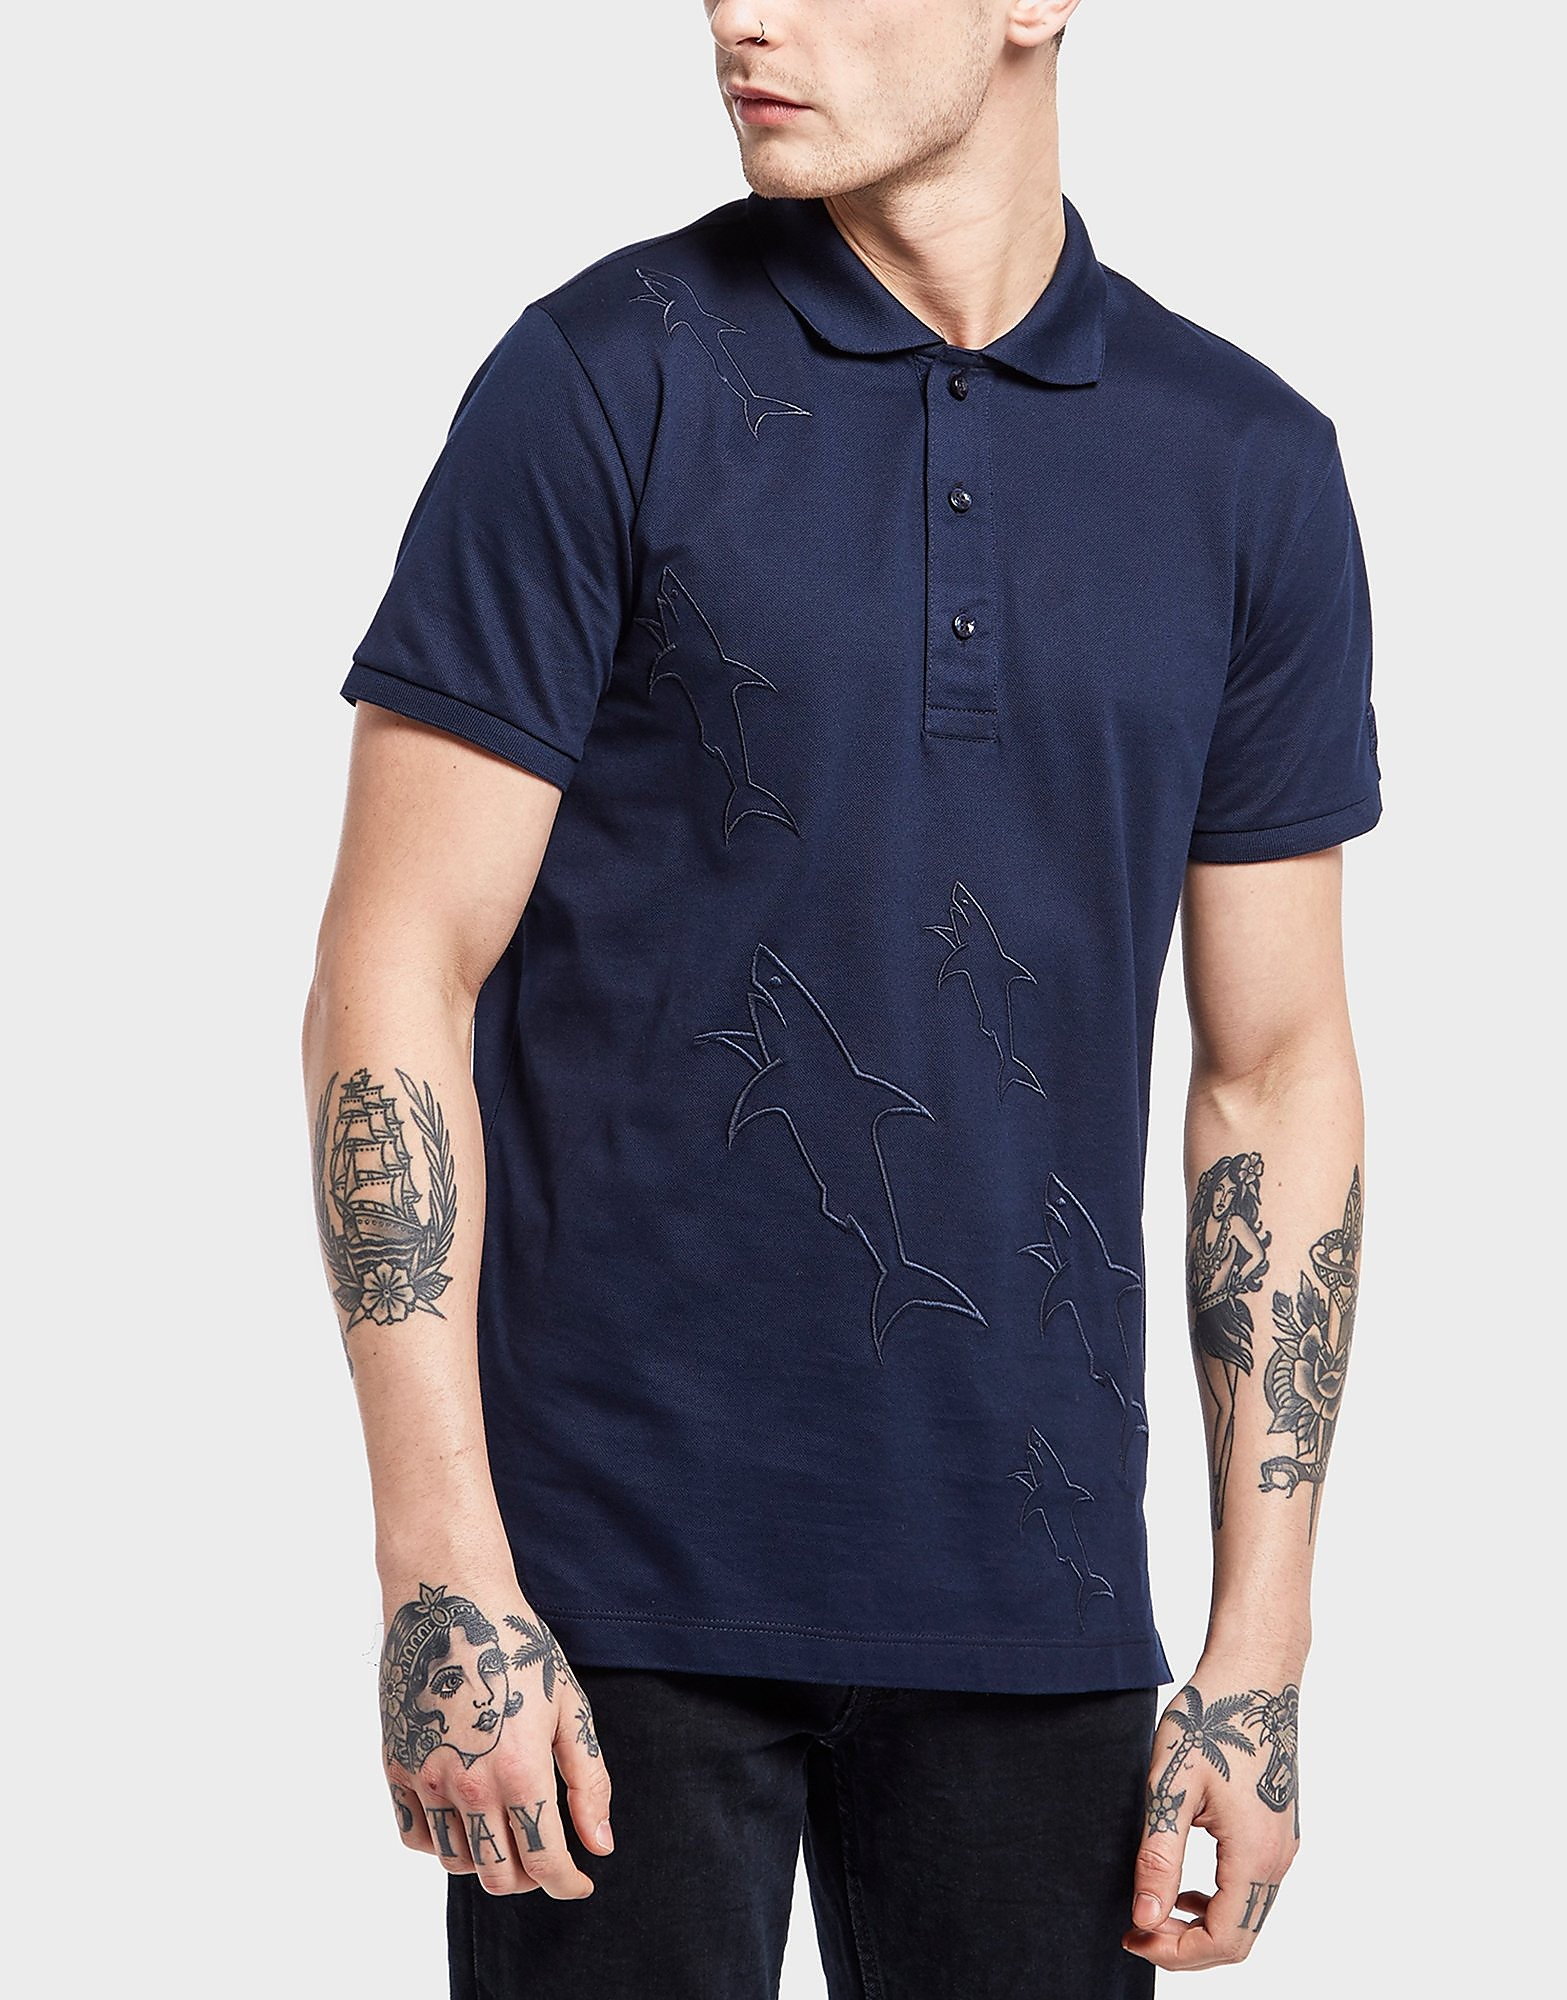 Paul and Shark Sharks Short Sleeve Polo Shirt